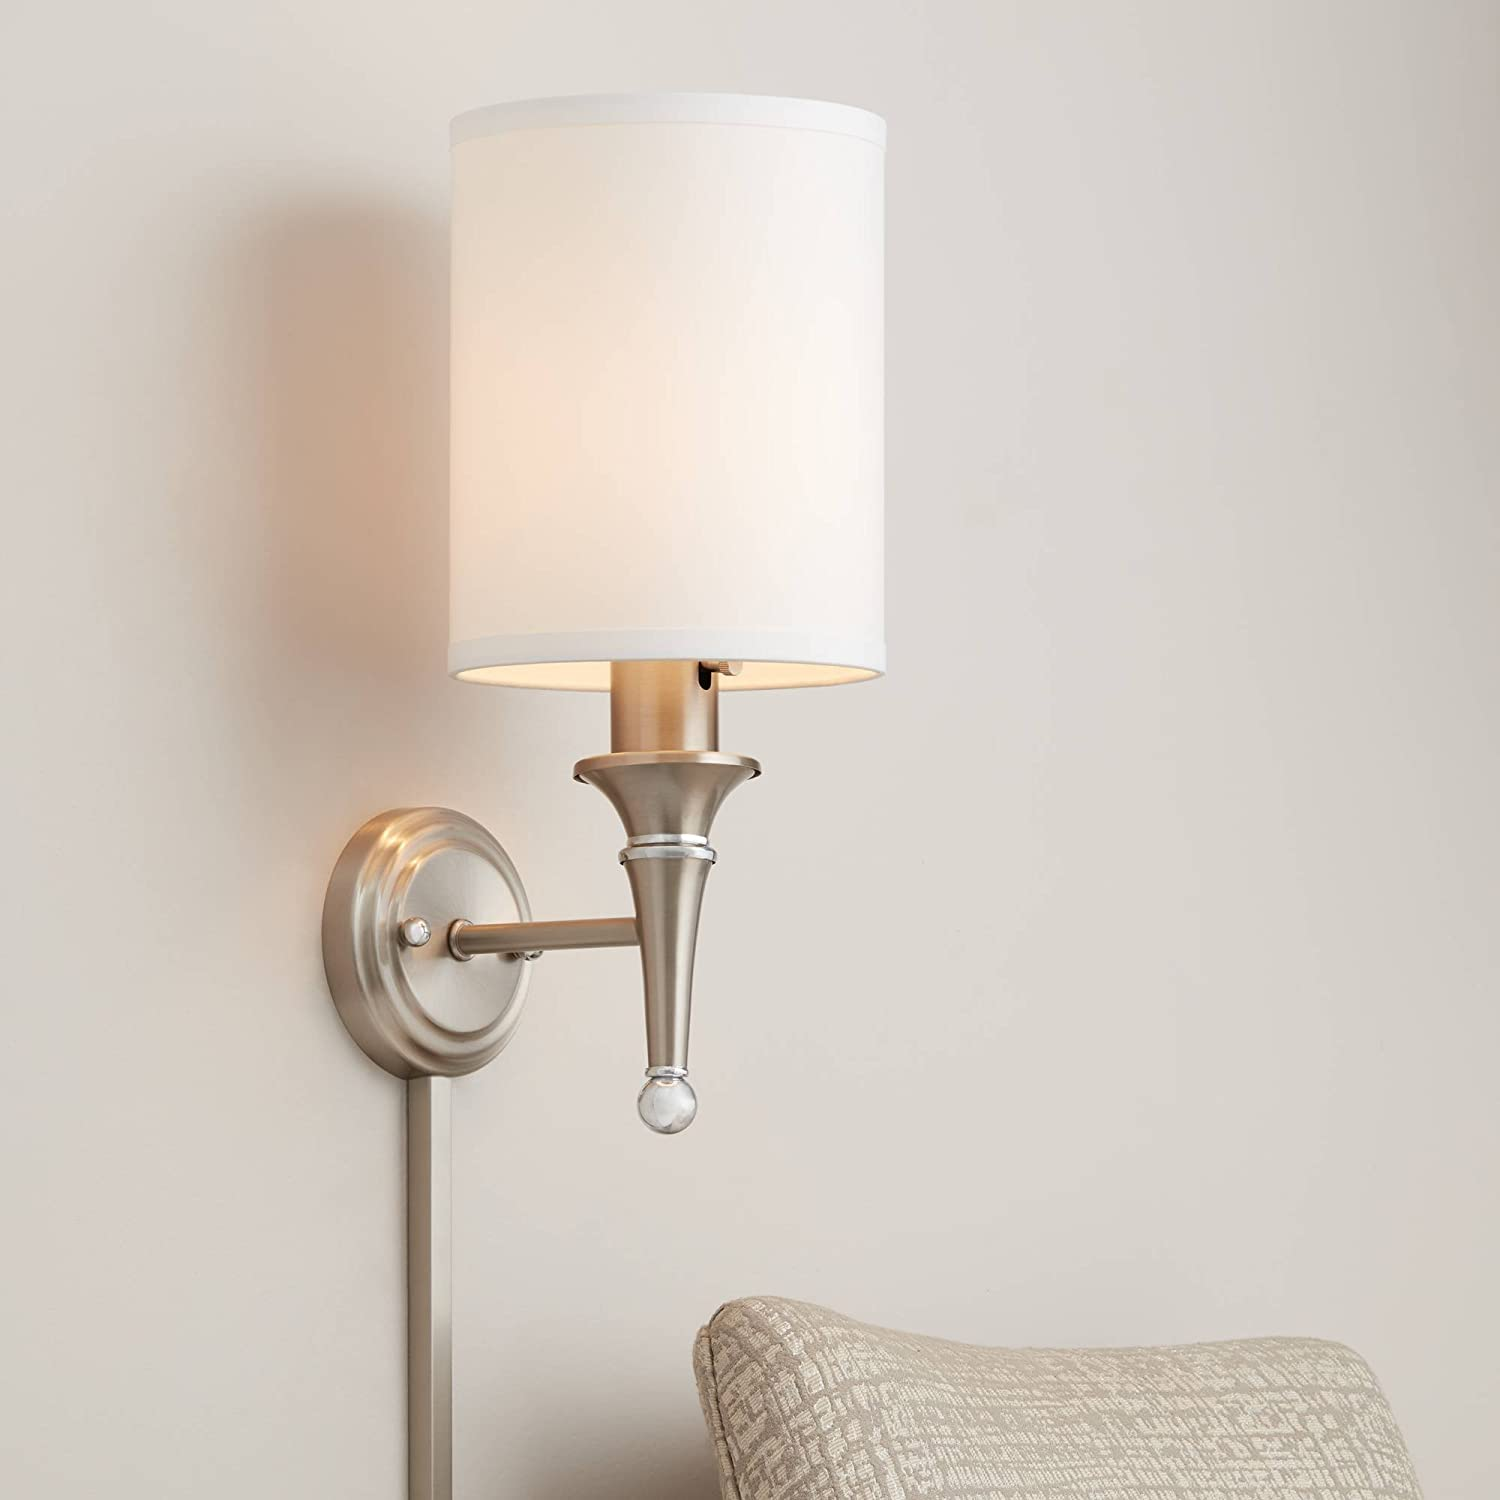 Braidy Modern Corded Wall Lamp Brushed Nickel Chrome Metal Plug-in Light Fixture White Faux Silk Cylinder Shade Bedroom Bedside House Reading Living Room Home Hallway Dining - Possini Euro Design